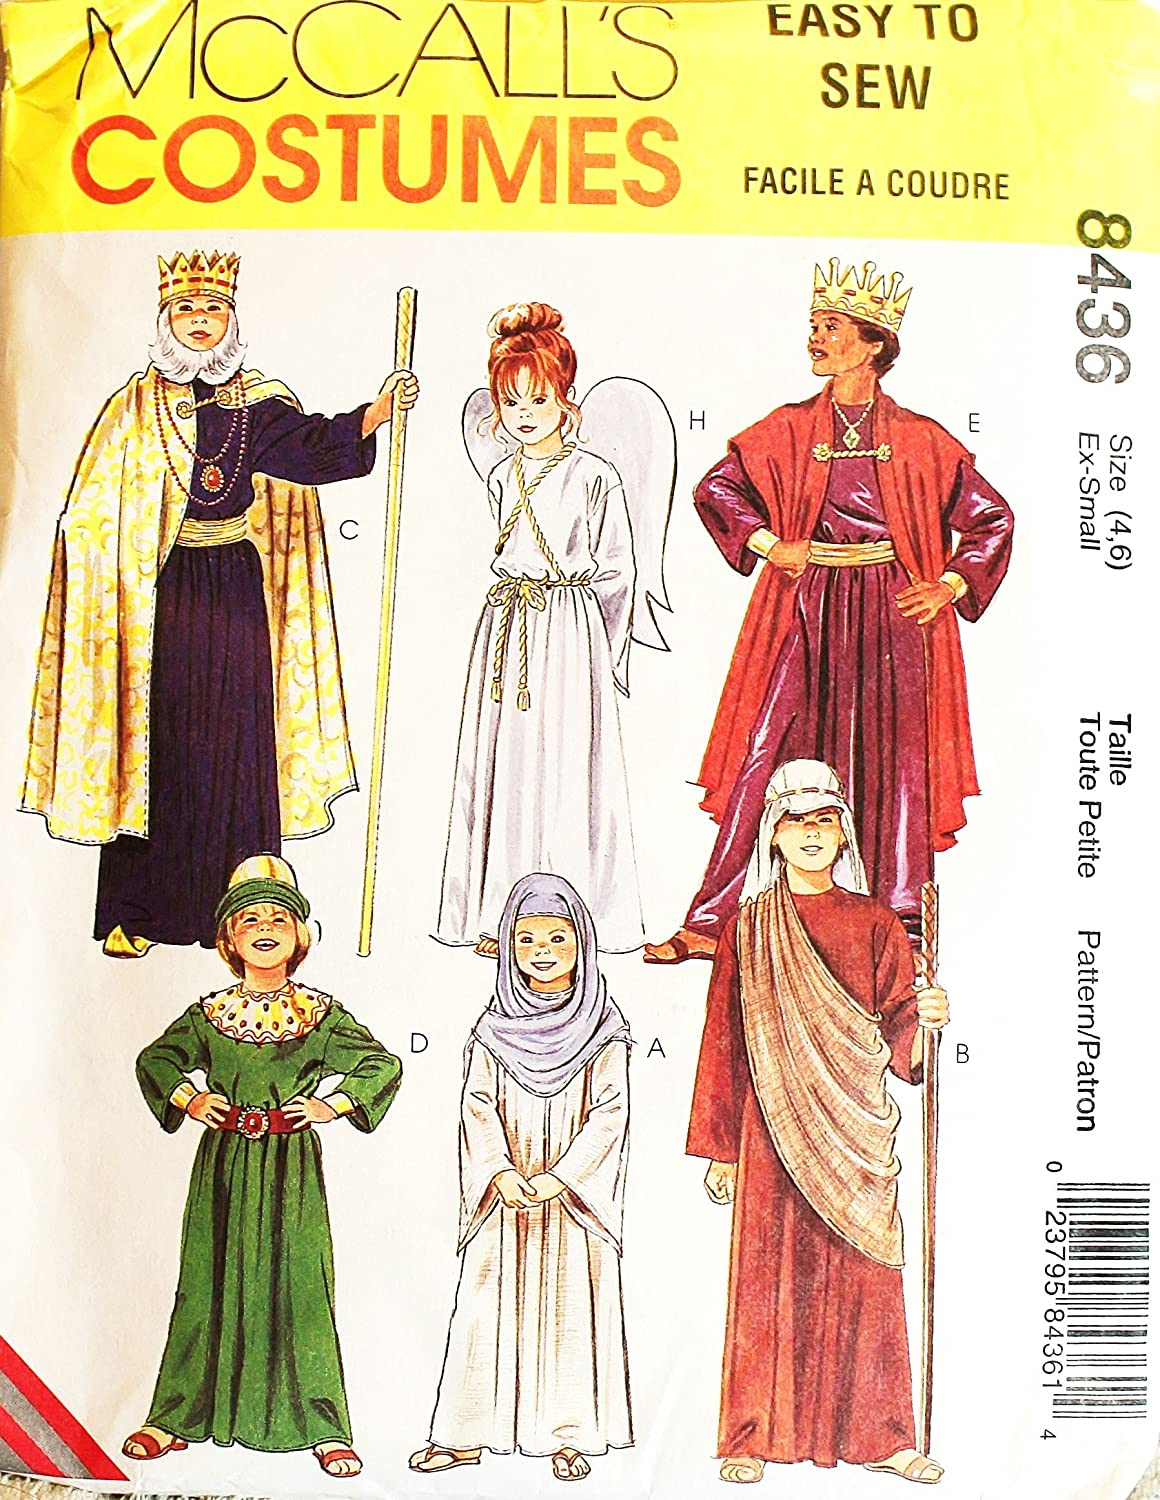 Amazon 1996oop mccalls pattern 8436 childs sz 46 king amazon 1996oop mccalls pattern 8436 childs sz 46 king angel shepherd wisemen religiousnativity costumes arts crafts sewing jeuxipadfo Images